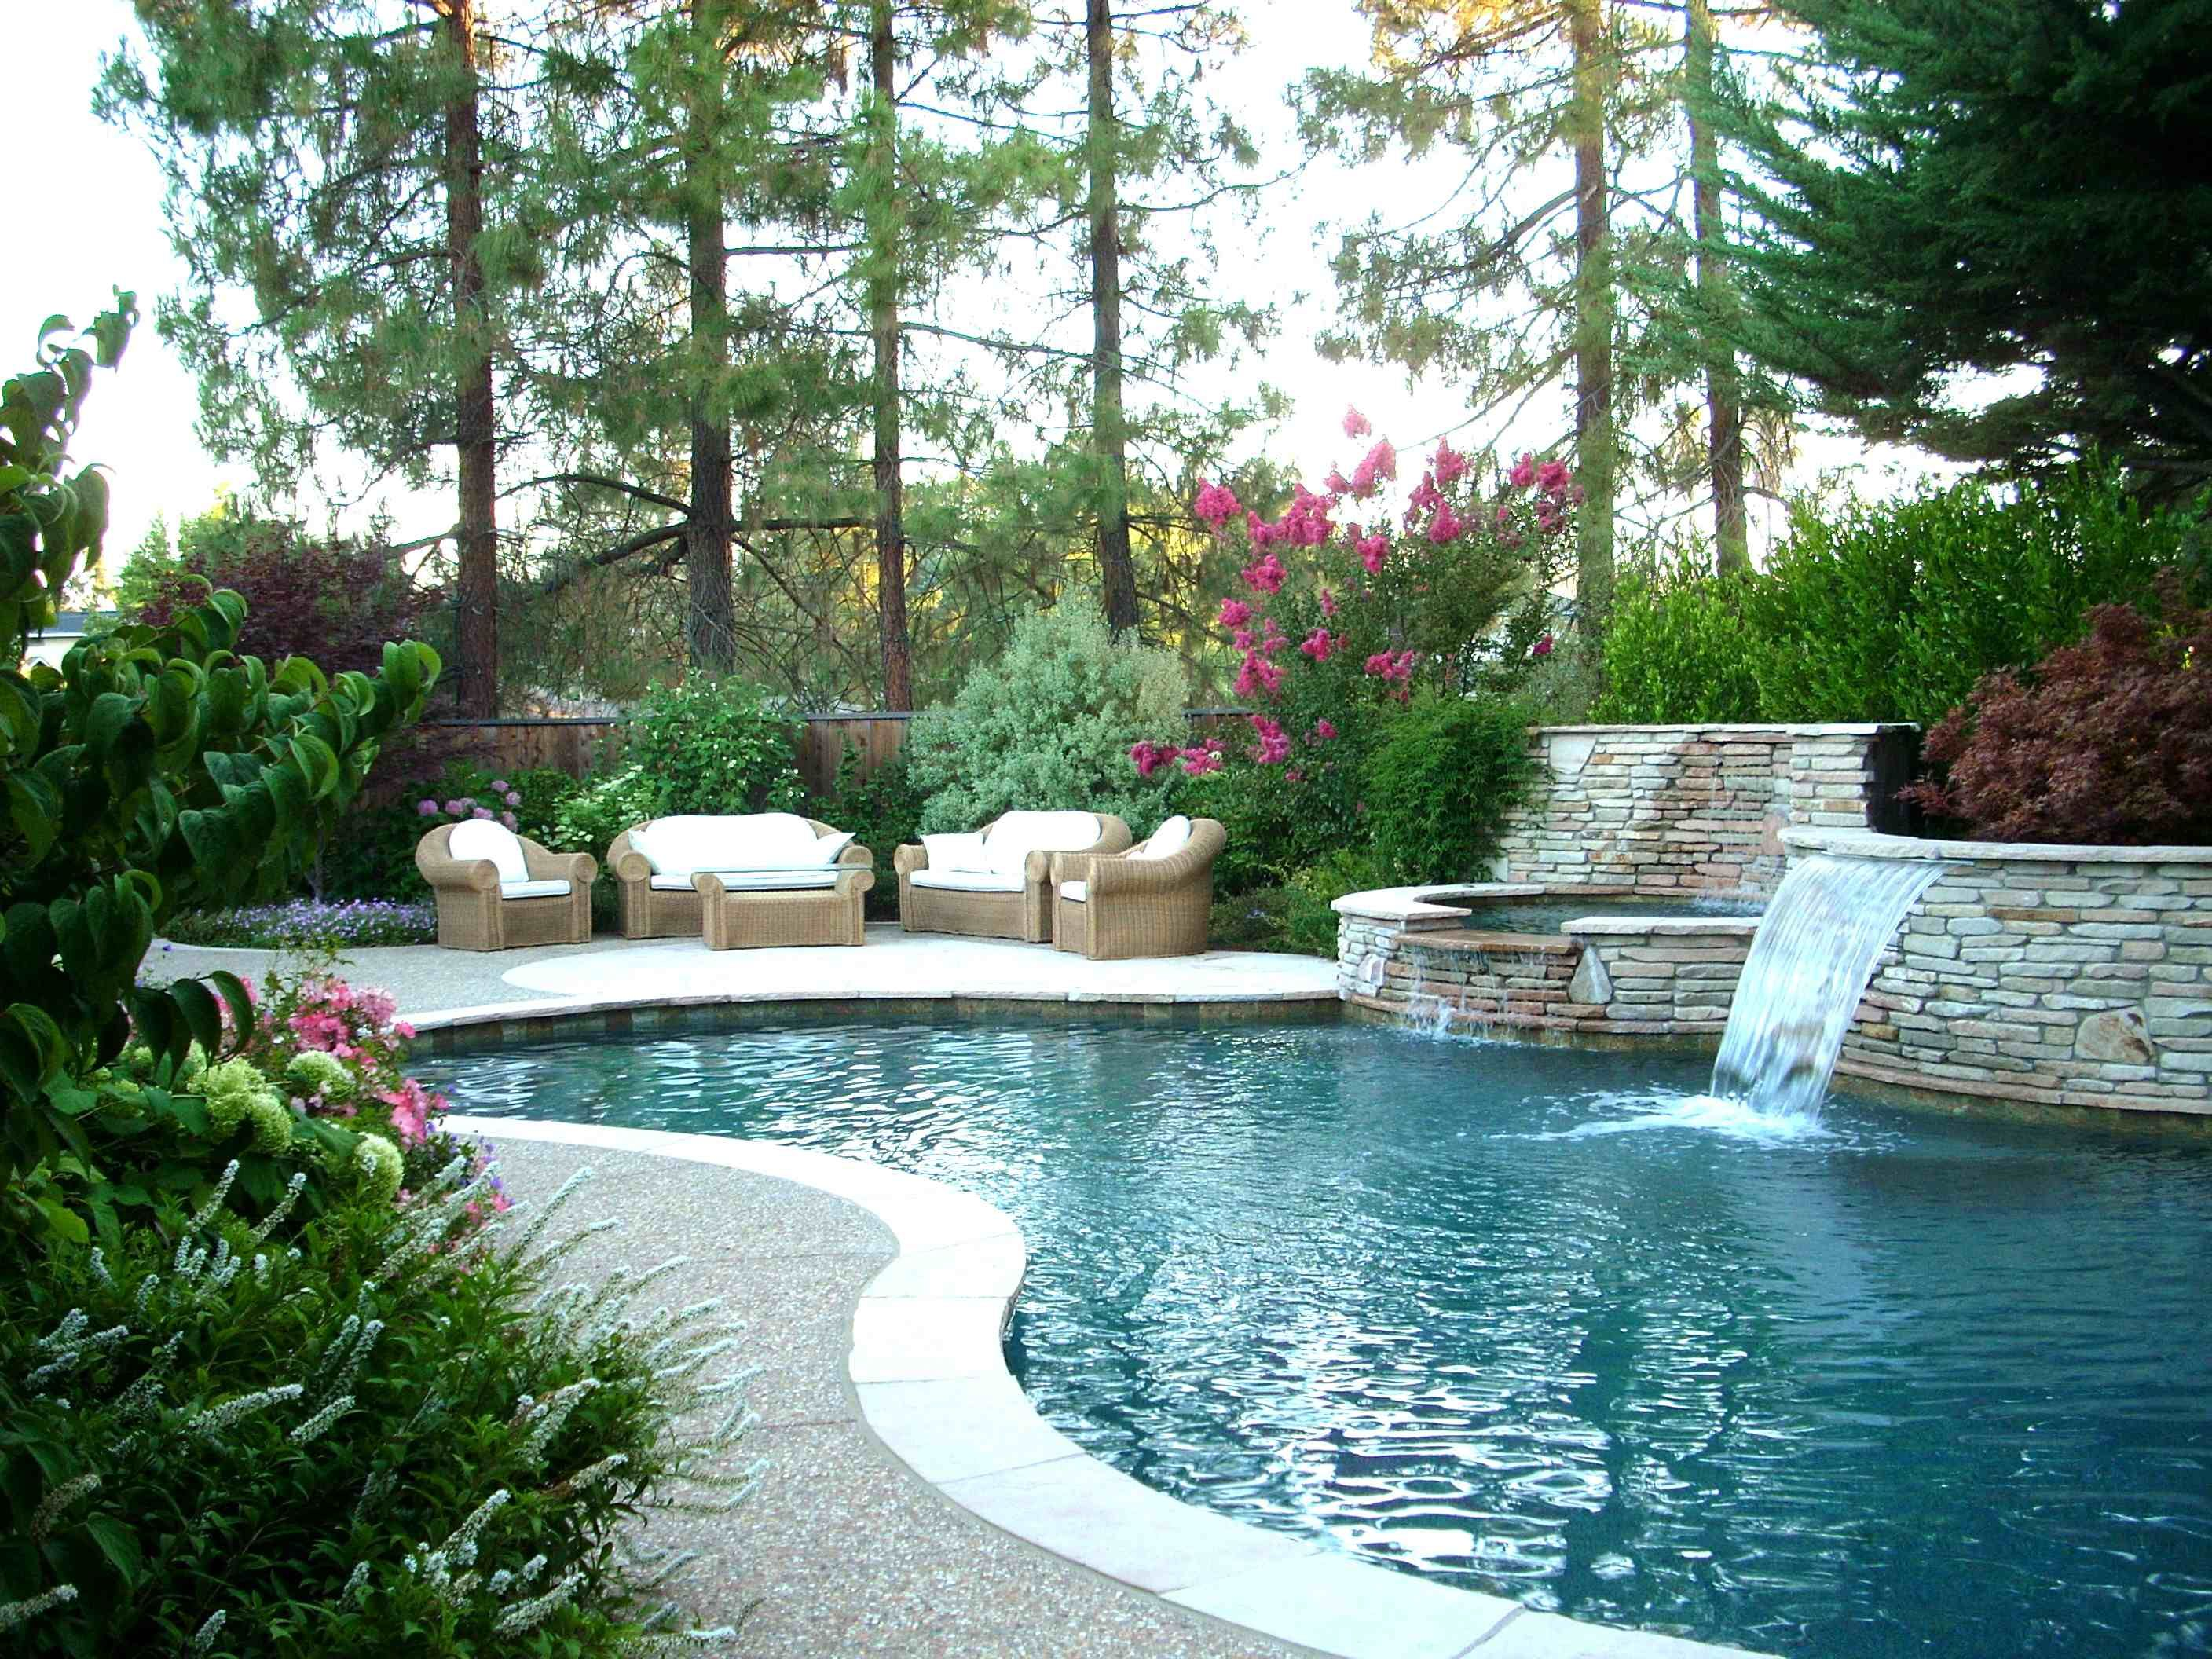 Landscaped pool pictures landscape design ideas for for Backyard garden designs and ideas